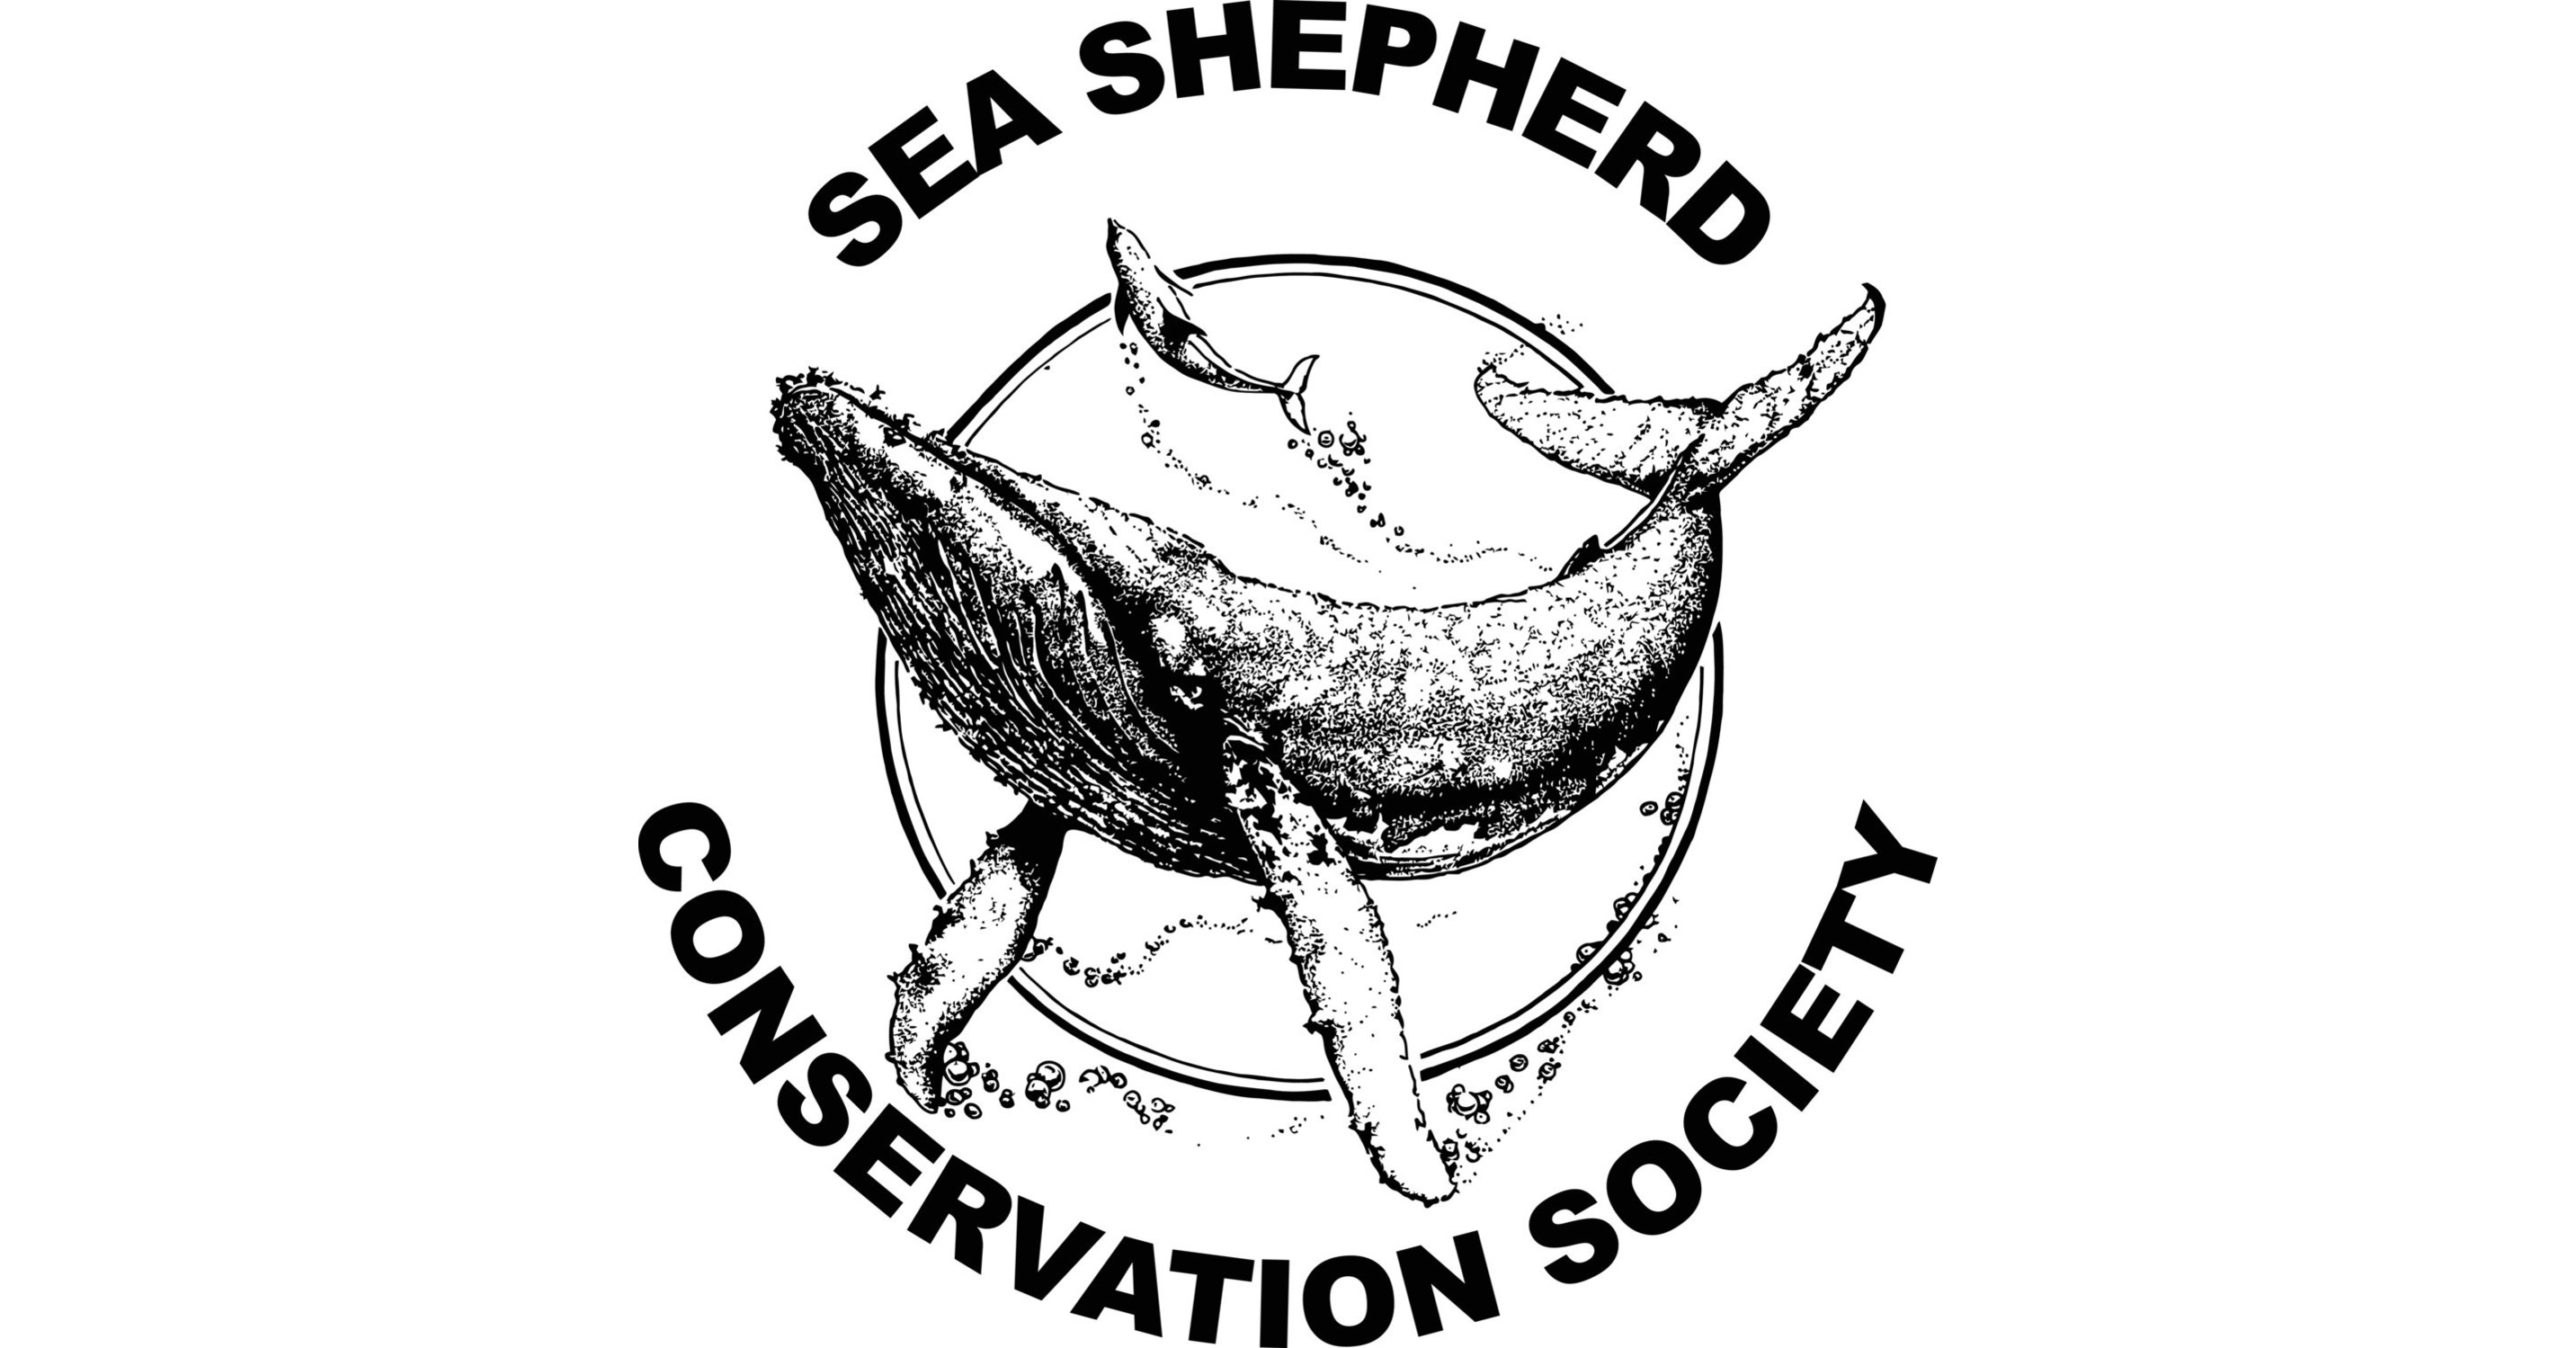 Sea Shepherd's Recommendations Taken Seriously at CITES CoP 18